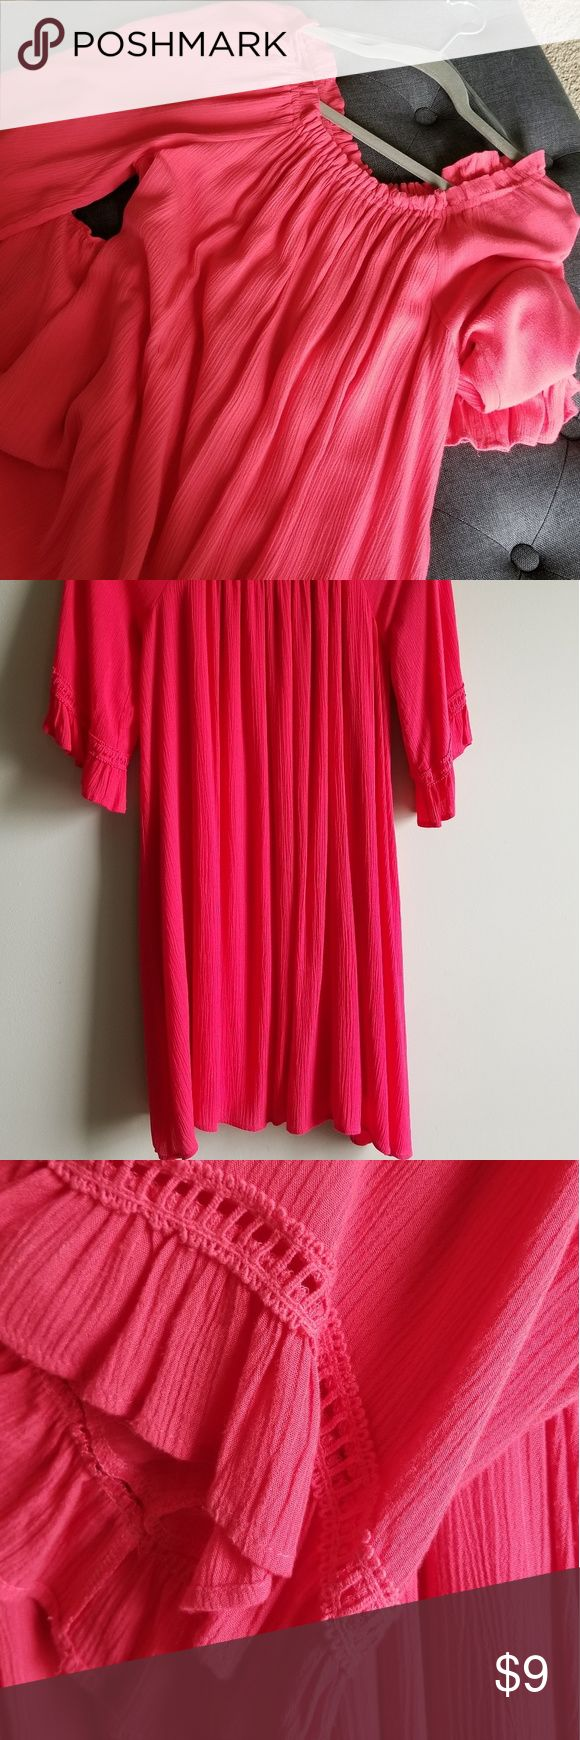 Fuchsia Bohemian Style Dress NWOT off shoulder Lg Gorgeous lined Boho style fun dress. Size large but comfortably fits an XL or 14/16 Bright pink with…